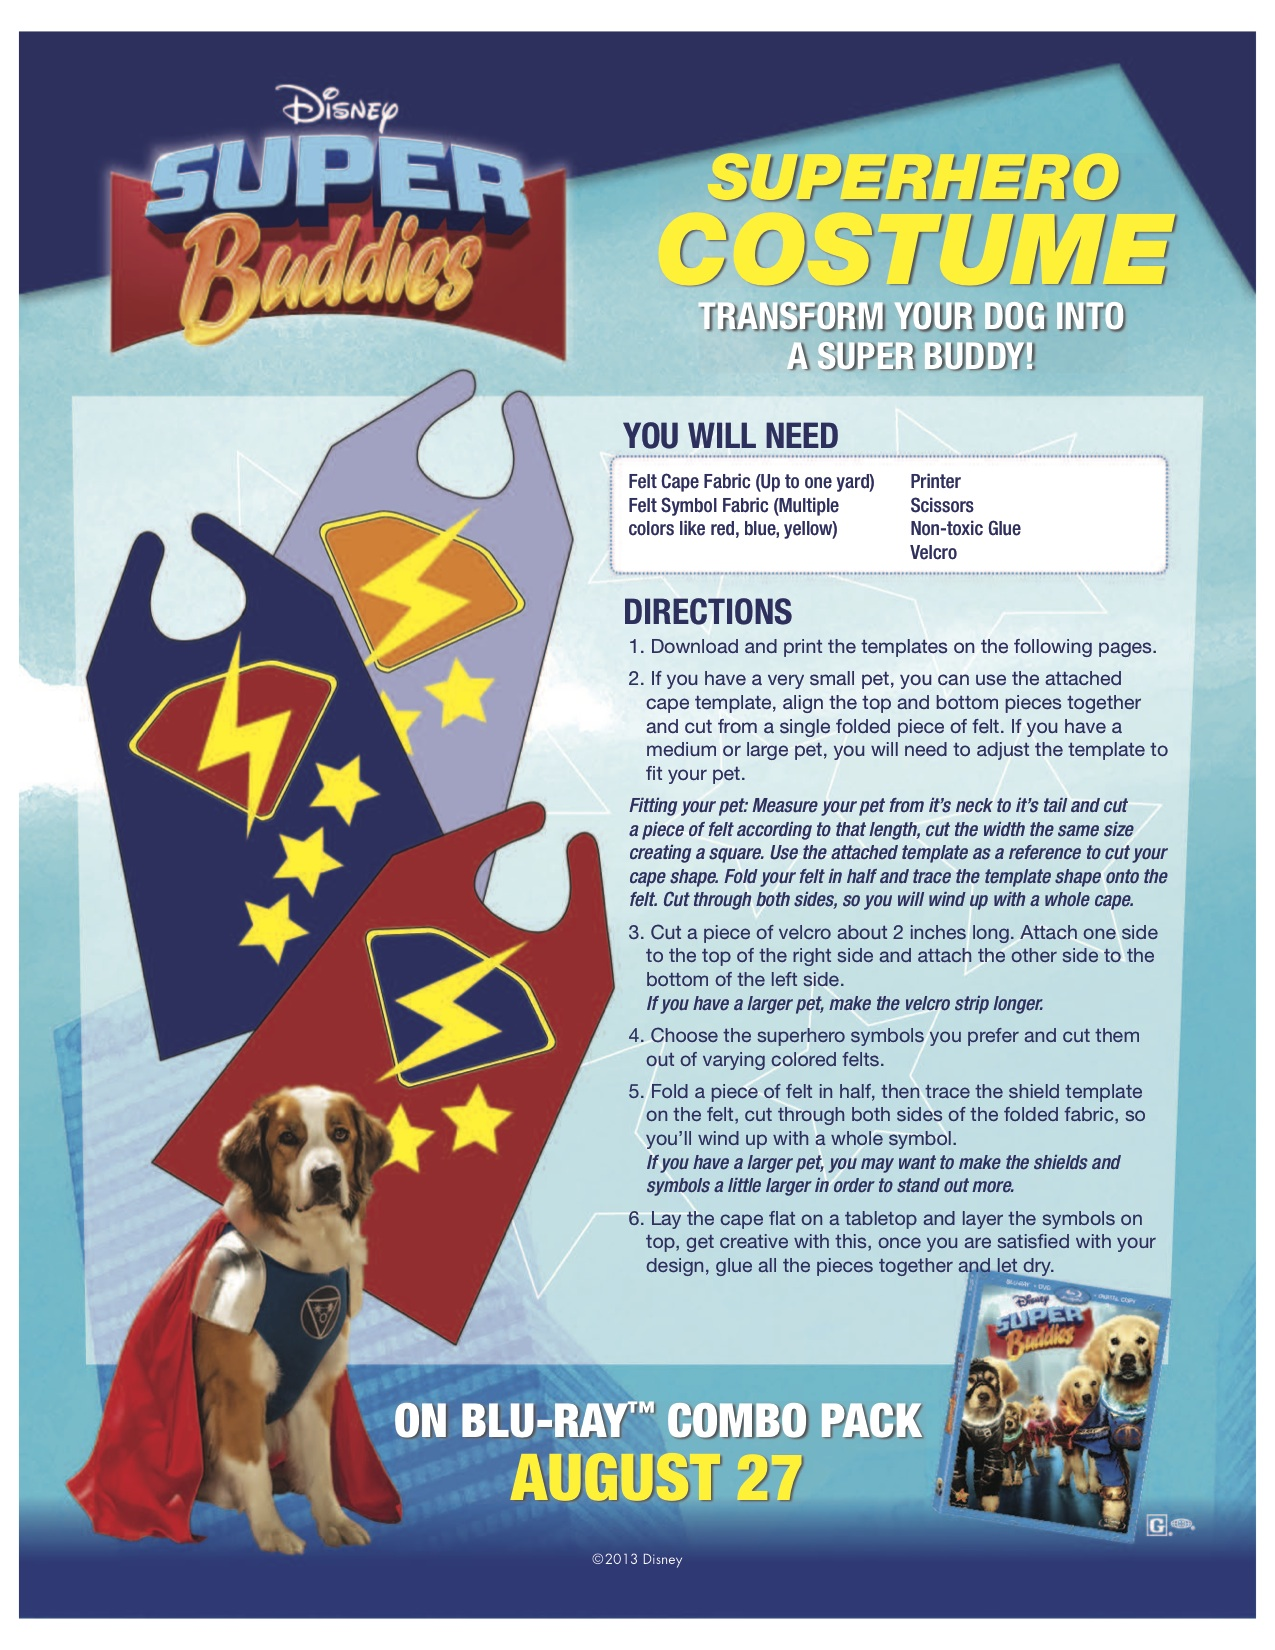 Disney DIY Super Hero Costume for Dogs